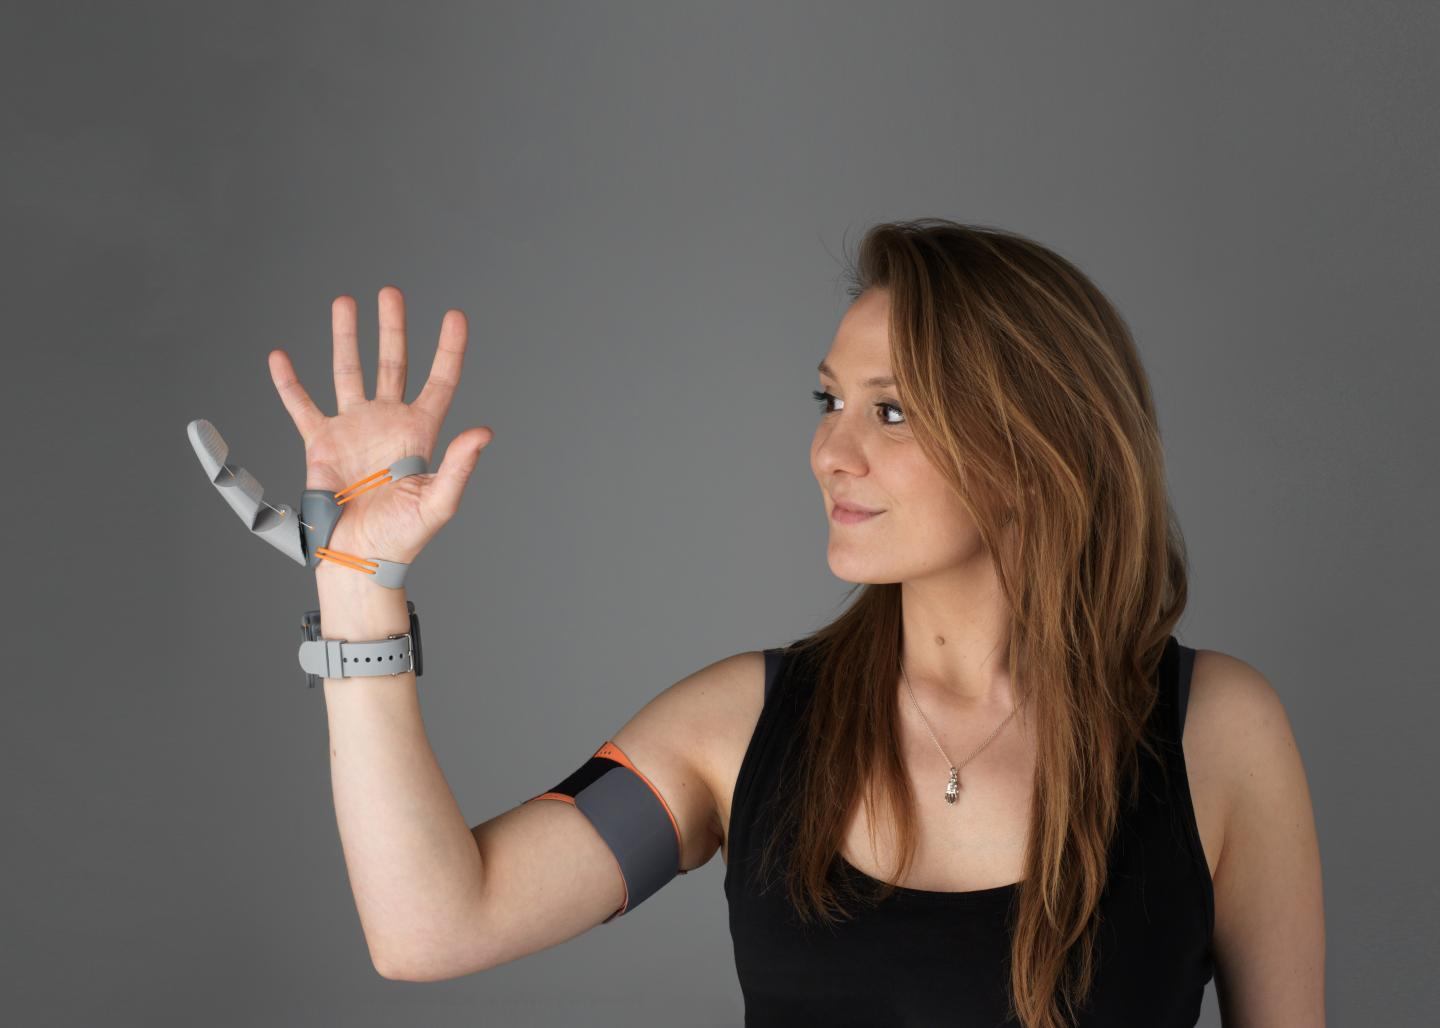 a white woman holds up her right hand. a prosthetic additional thumb is attached to the opposite side of her right hand, accompanied by some wires leading to a strap around her bicep